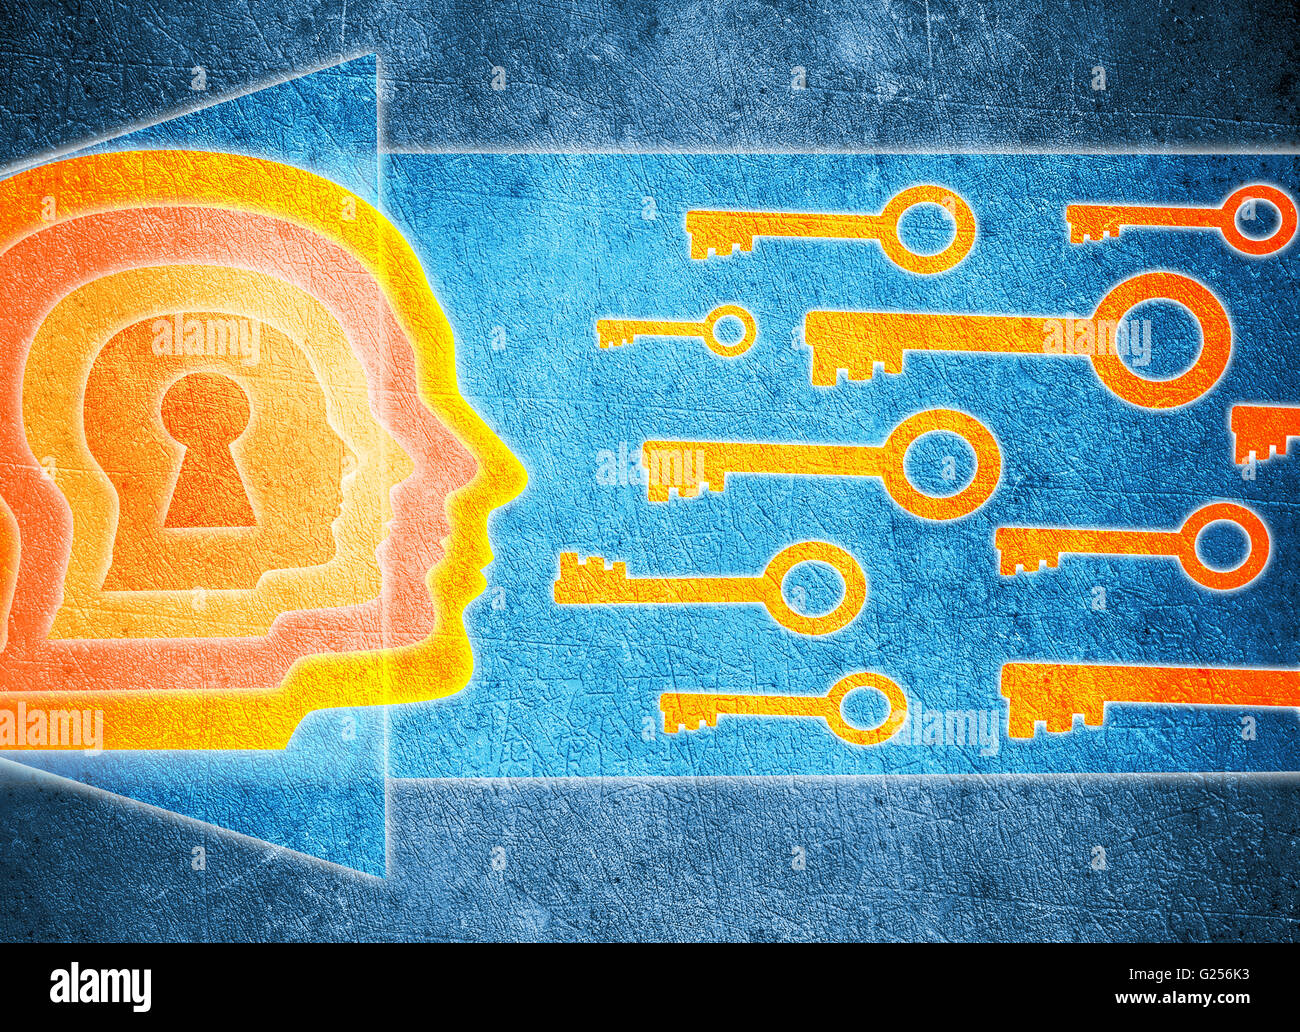 human head  with keyhole and keys psychology concept digital illustration - Stock Image